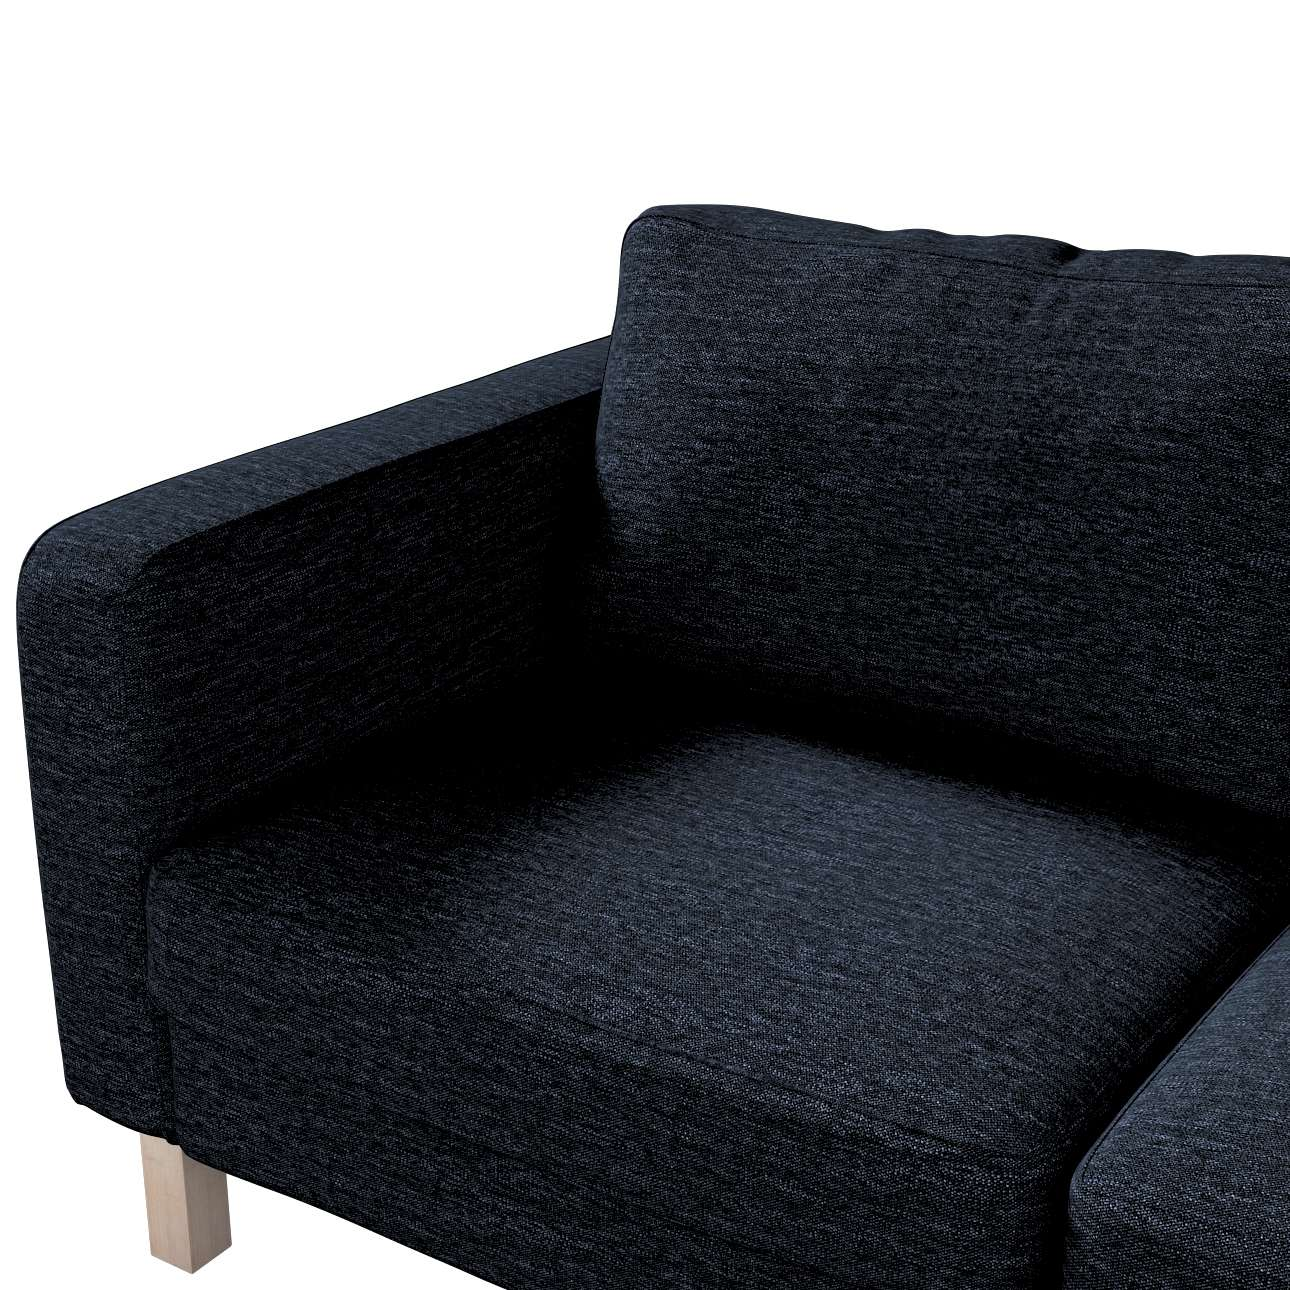 Karlstad 2-seater sofa cover in collection Etna, fabric: 702-38